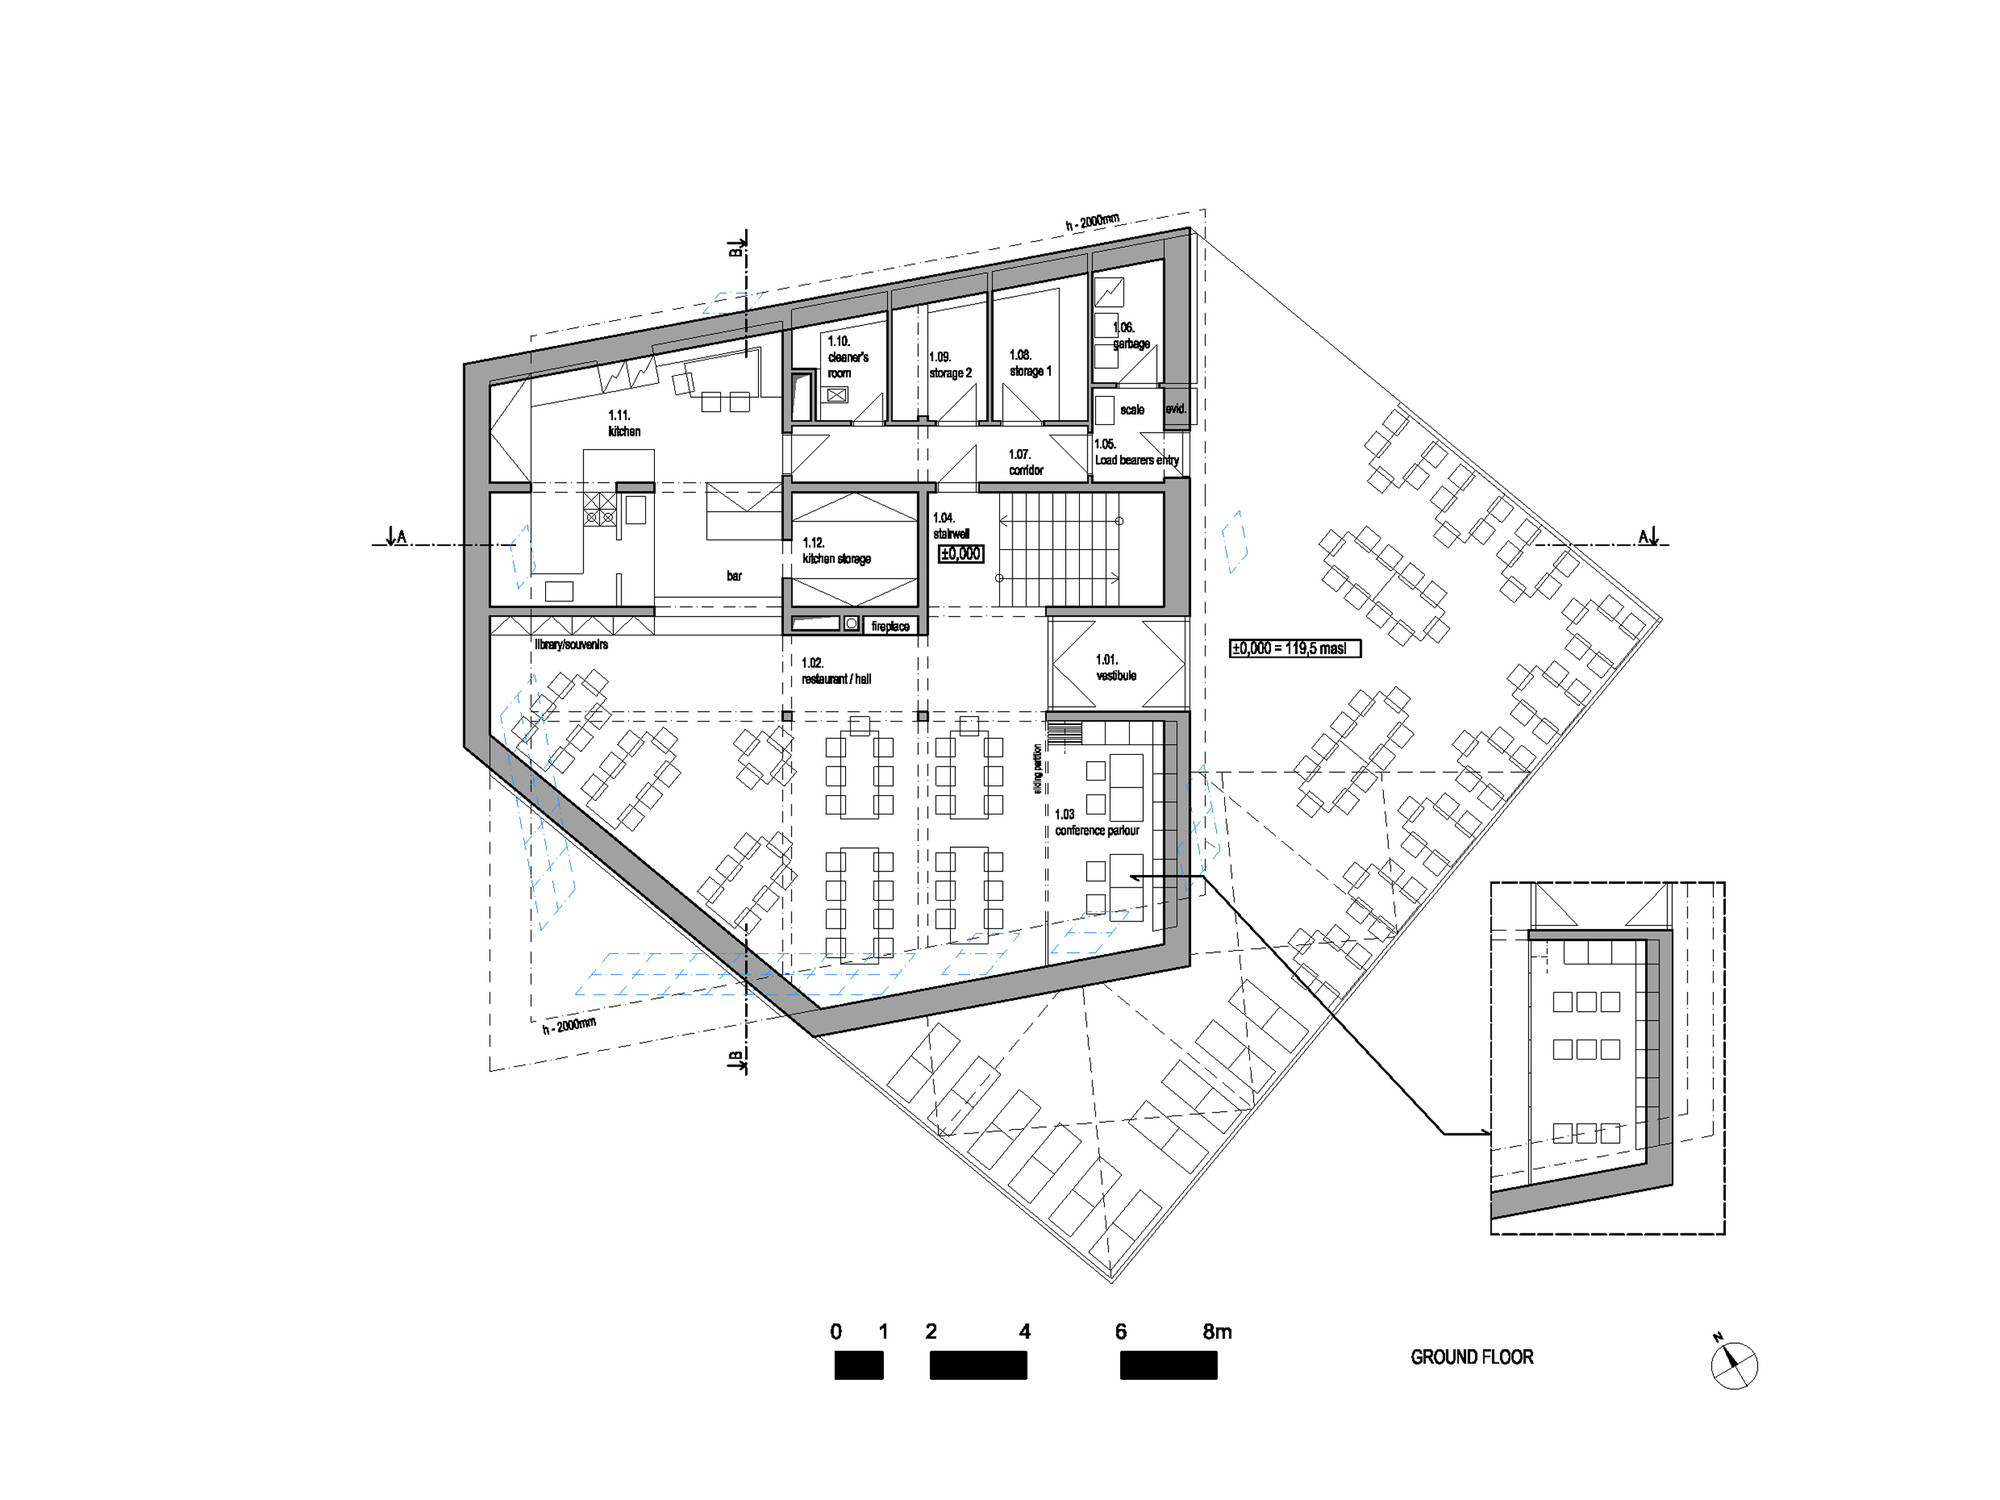 Ekasits Case Study Villa Savoye besides 542616e4c07a80548f0001c3 The Family Playground House Design Floor Plan likewise 51dedd14e8e44e6873000002 Ad Classics The Dymaxion House Buckminster Fuller Image together with Casa Bodega De Verano Judith Benzer Architektur besides Big Great Room House Plans. on modern house floor plans